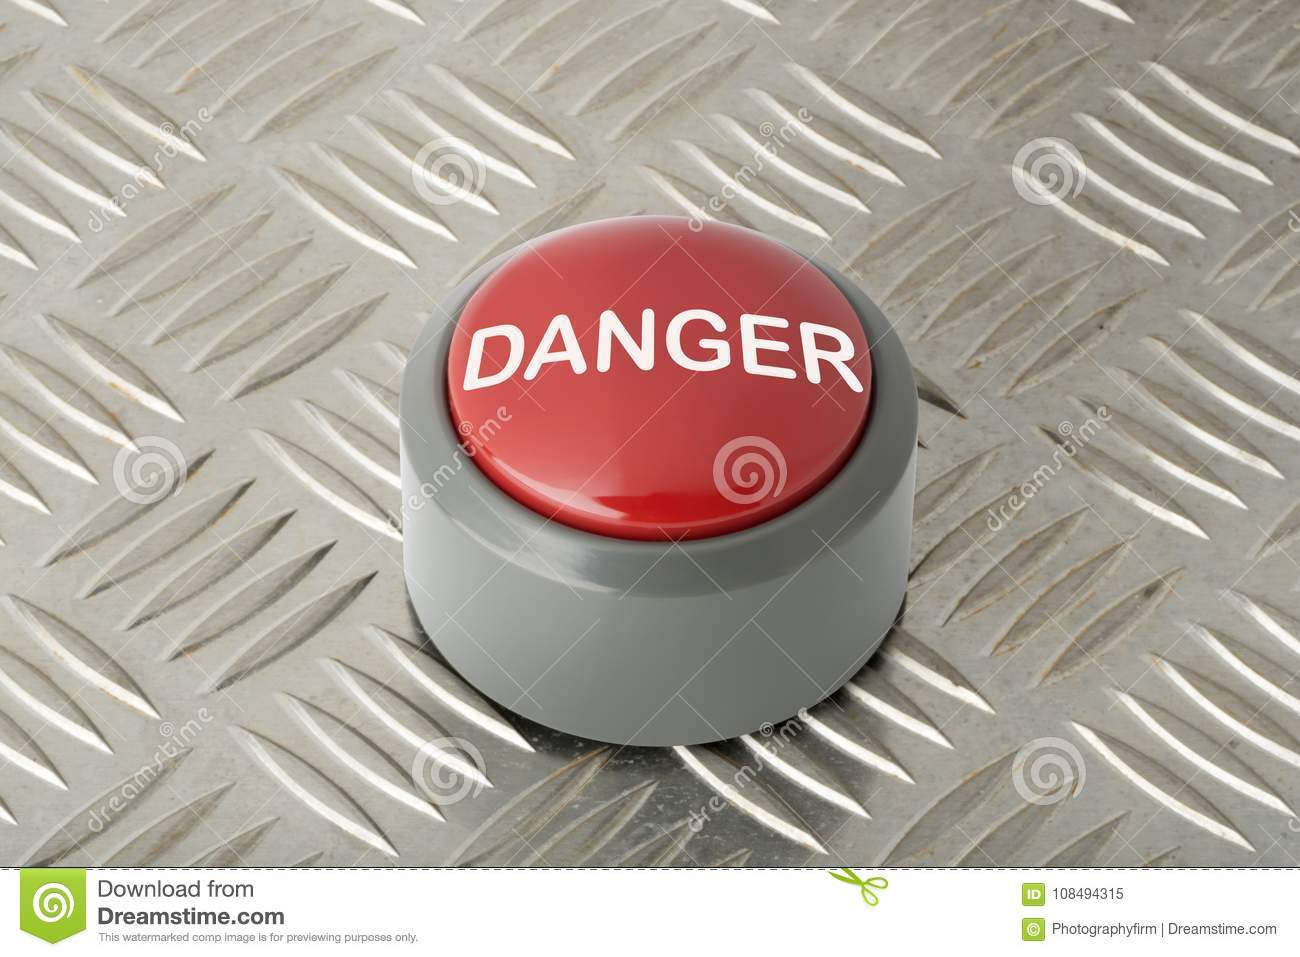 on diamond photo white sign isolated background edit image now a danger ambulance stock orange